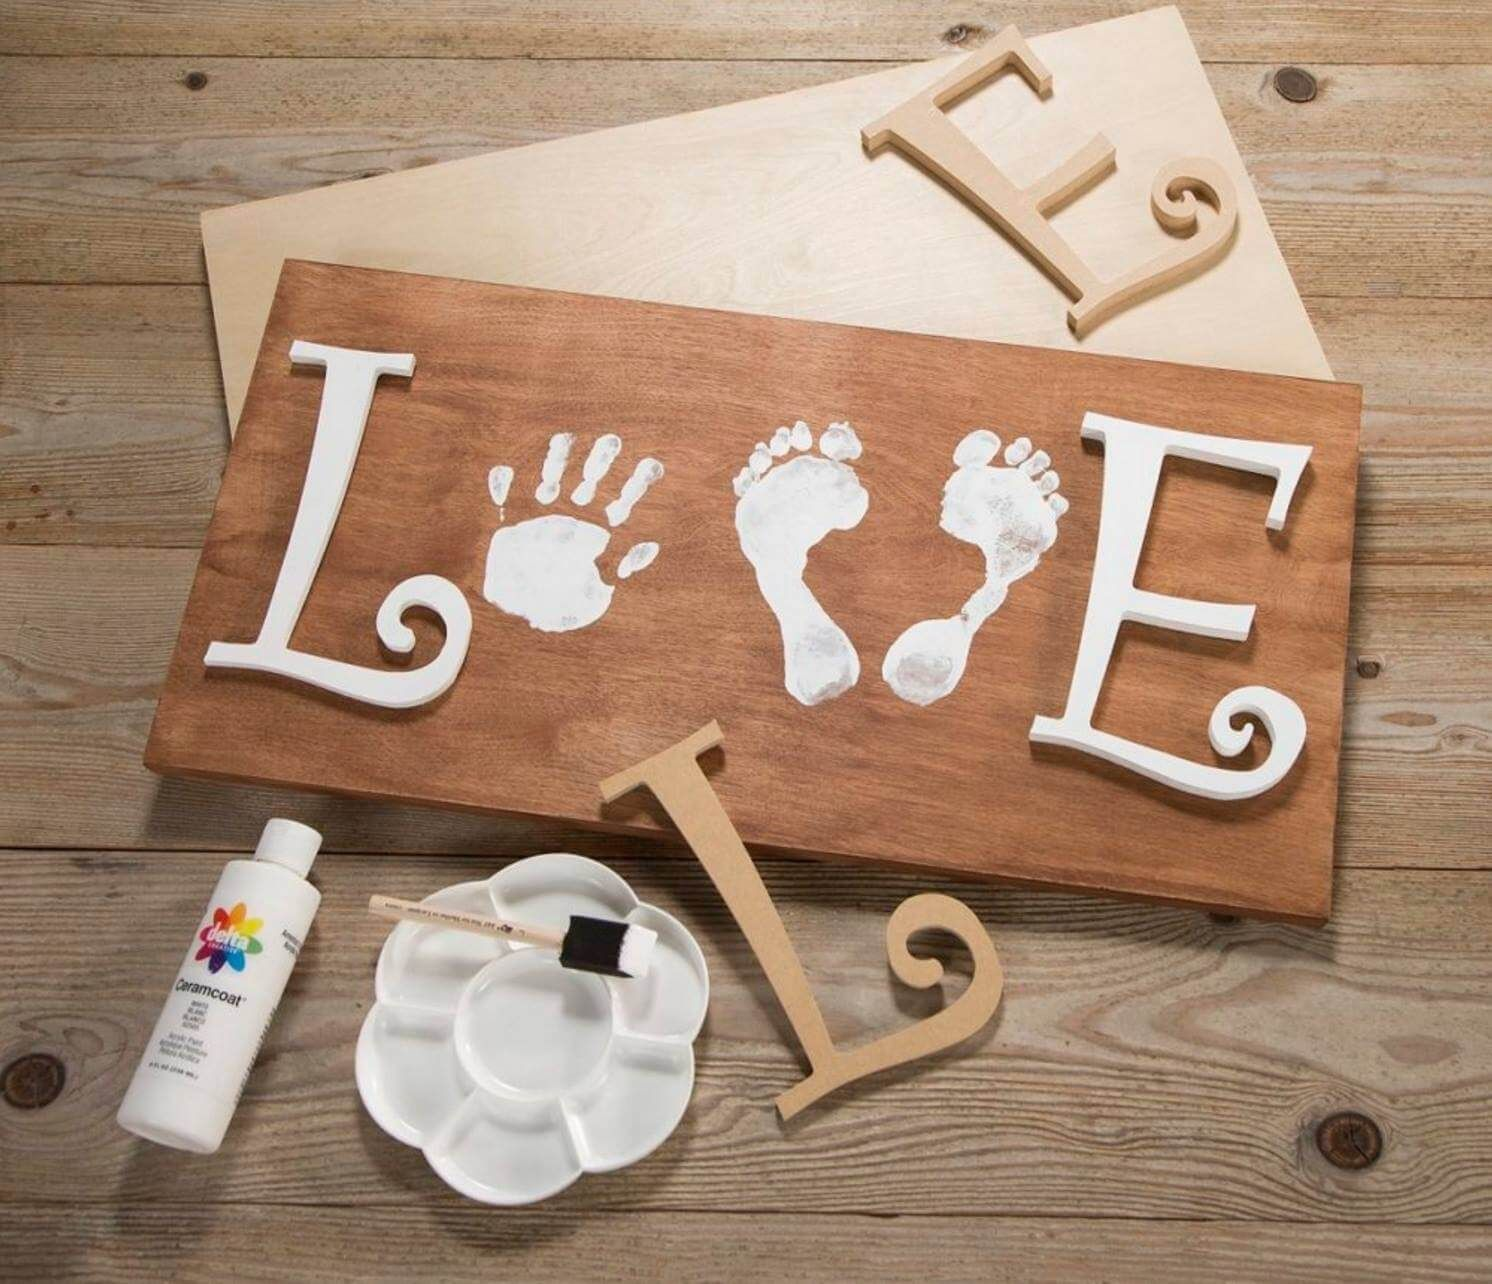 12 Rustic Love Wood Signs That Will Take Your Decor To The Next ...